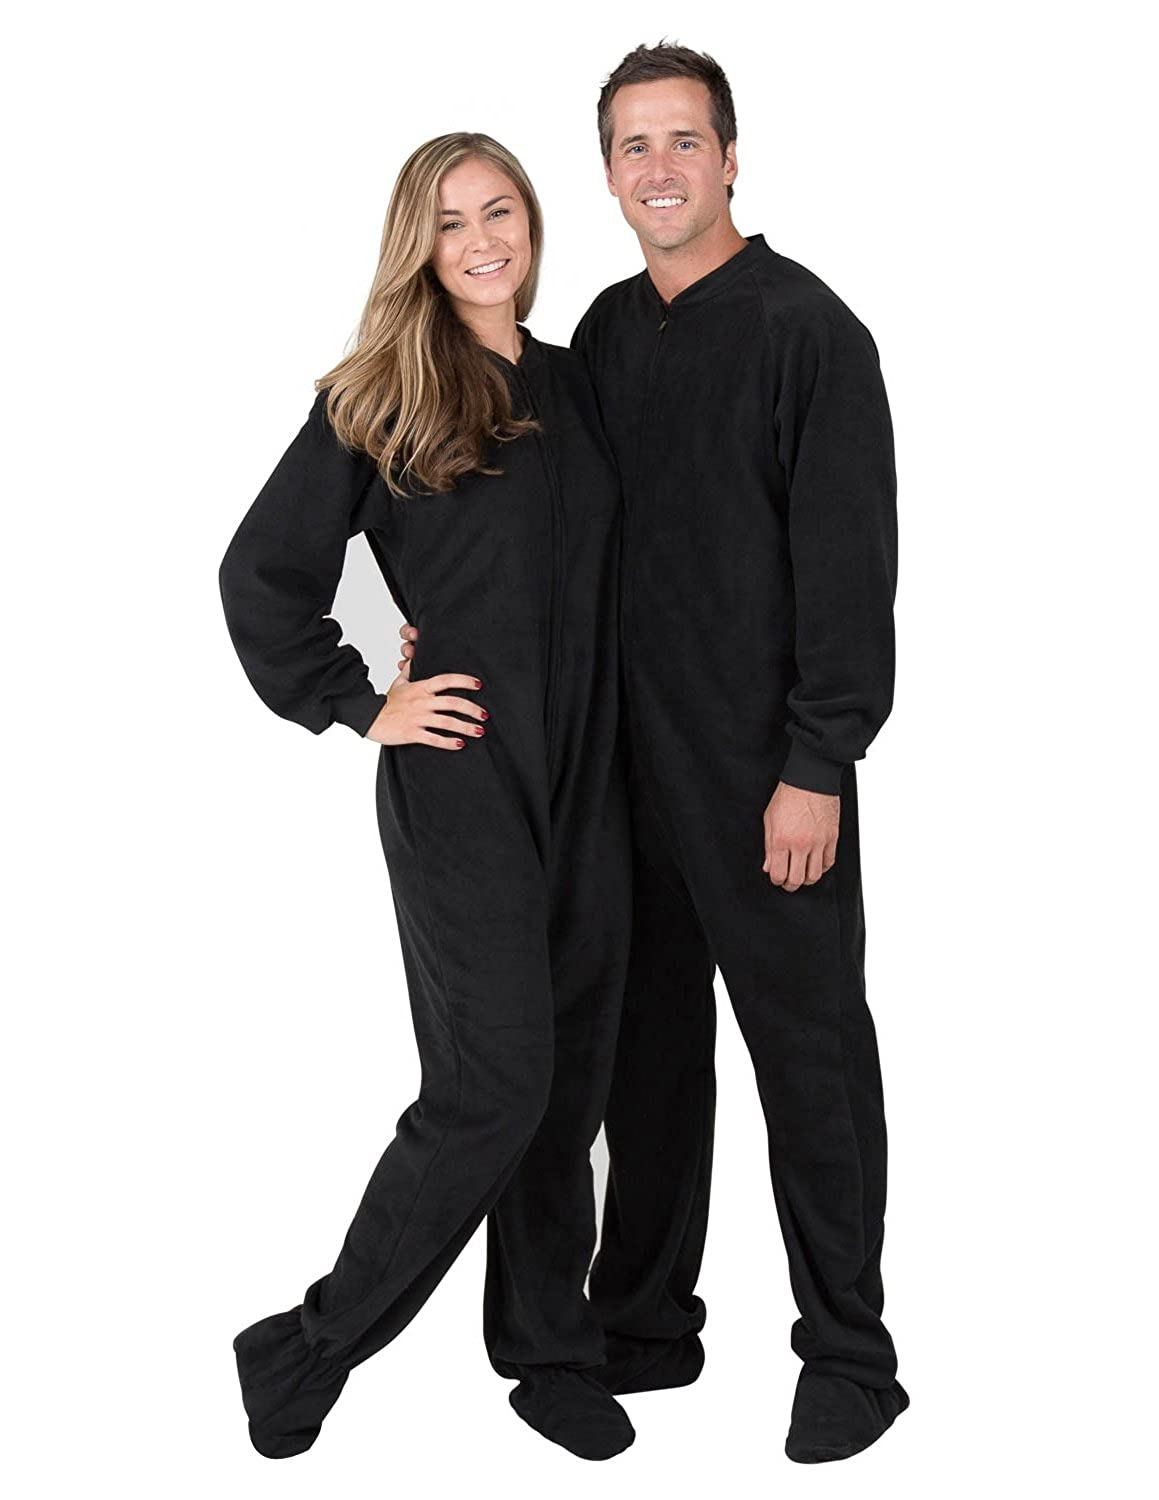 Adult size feety pajamas the videos